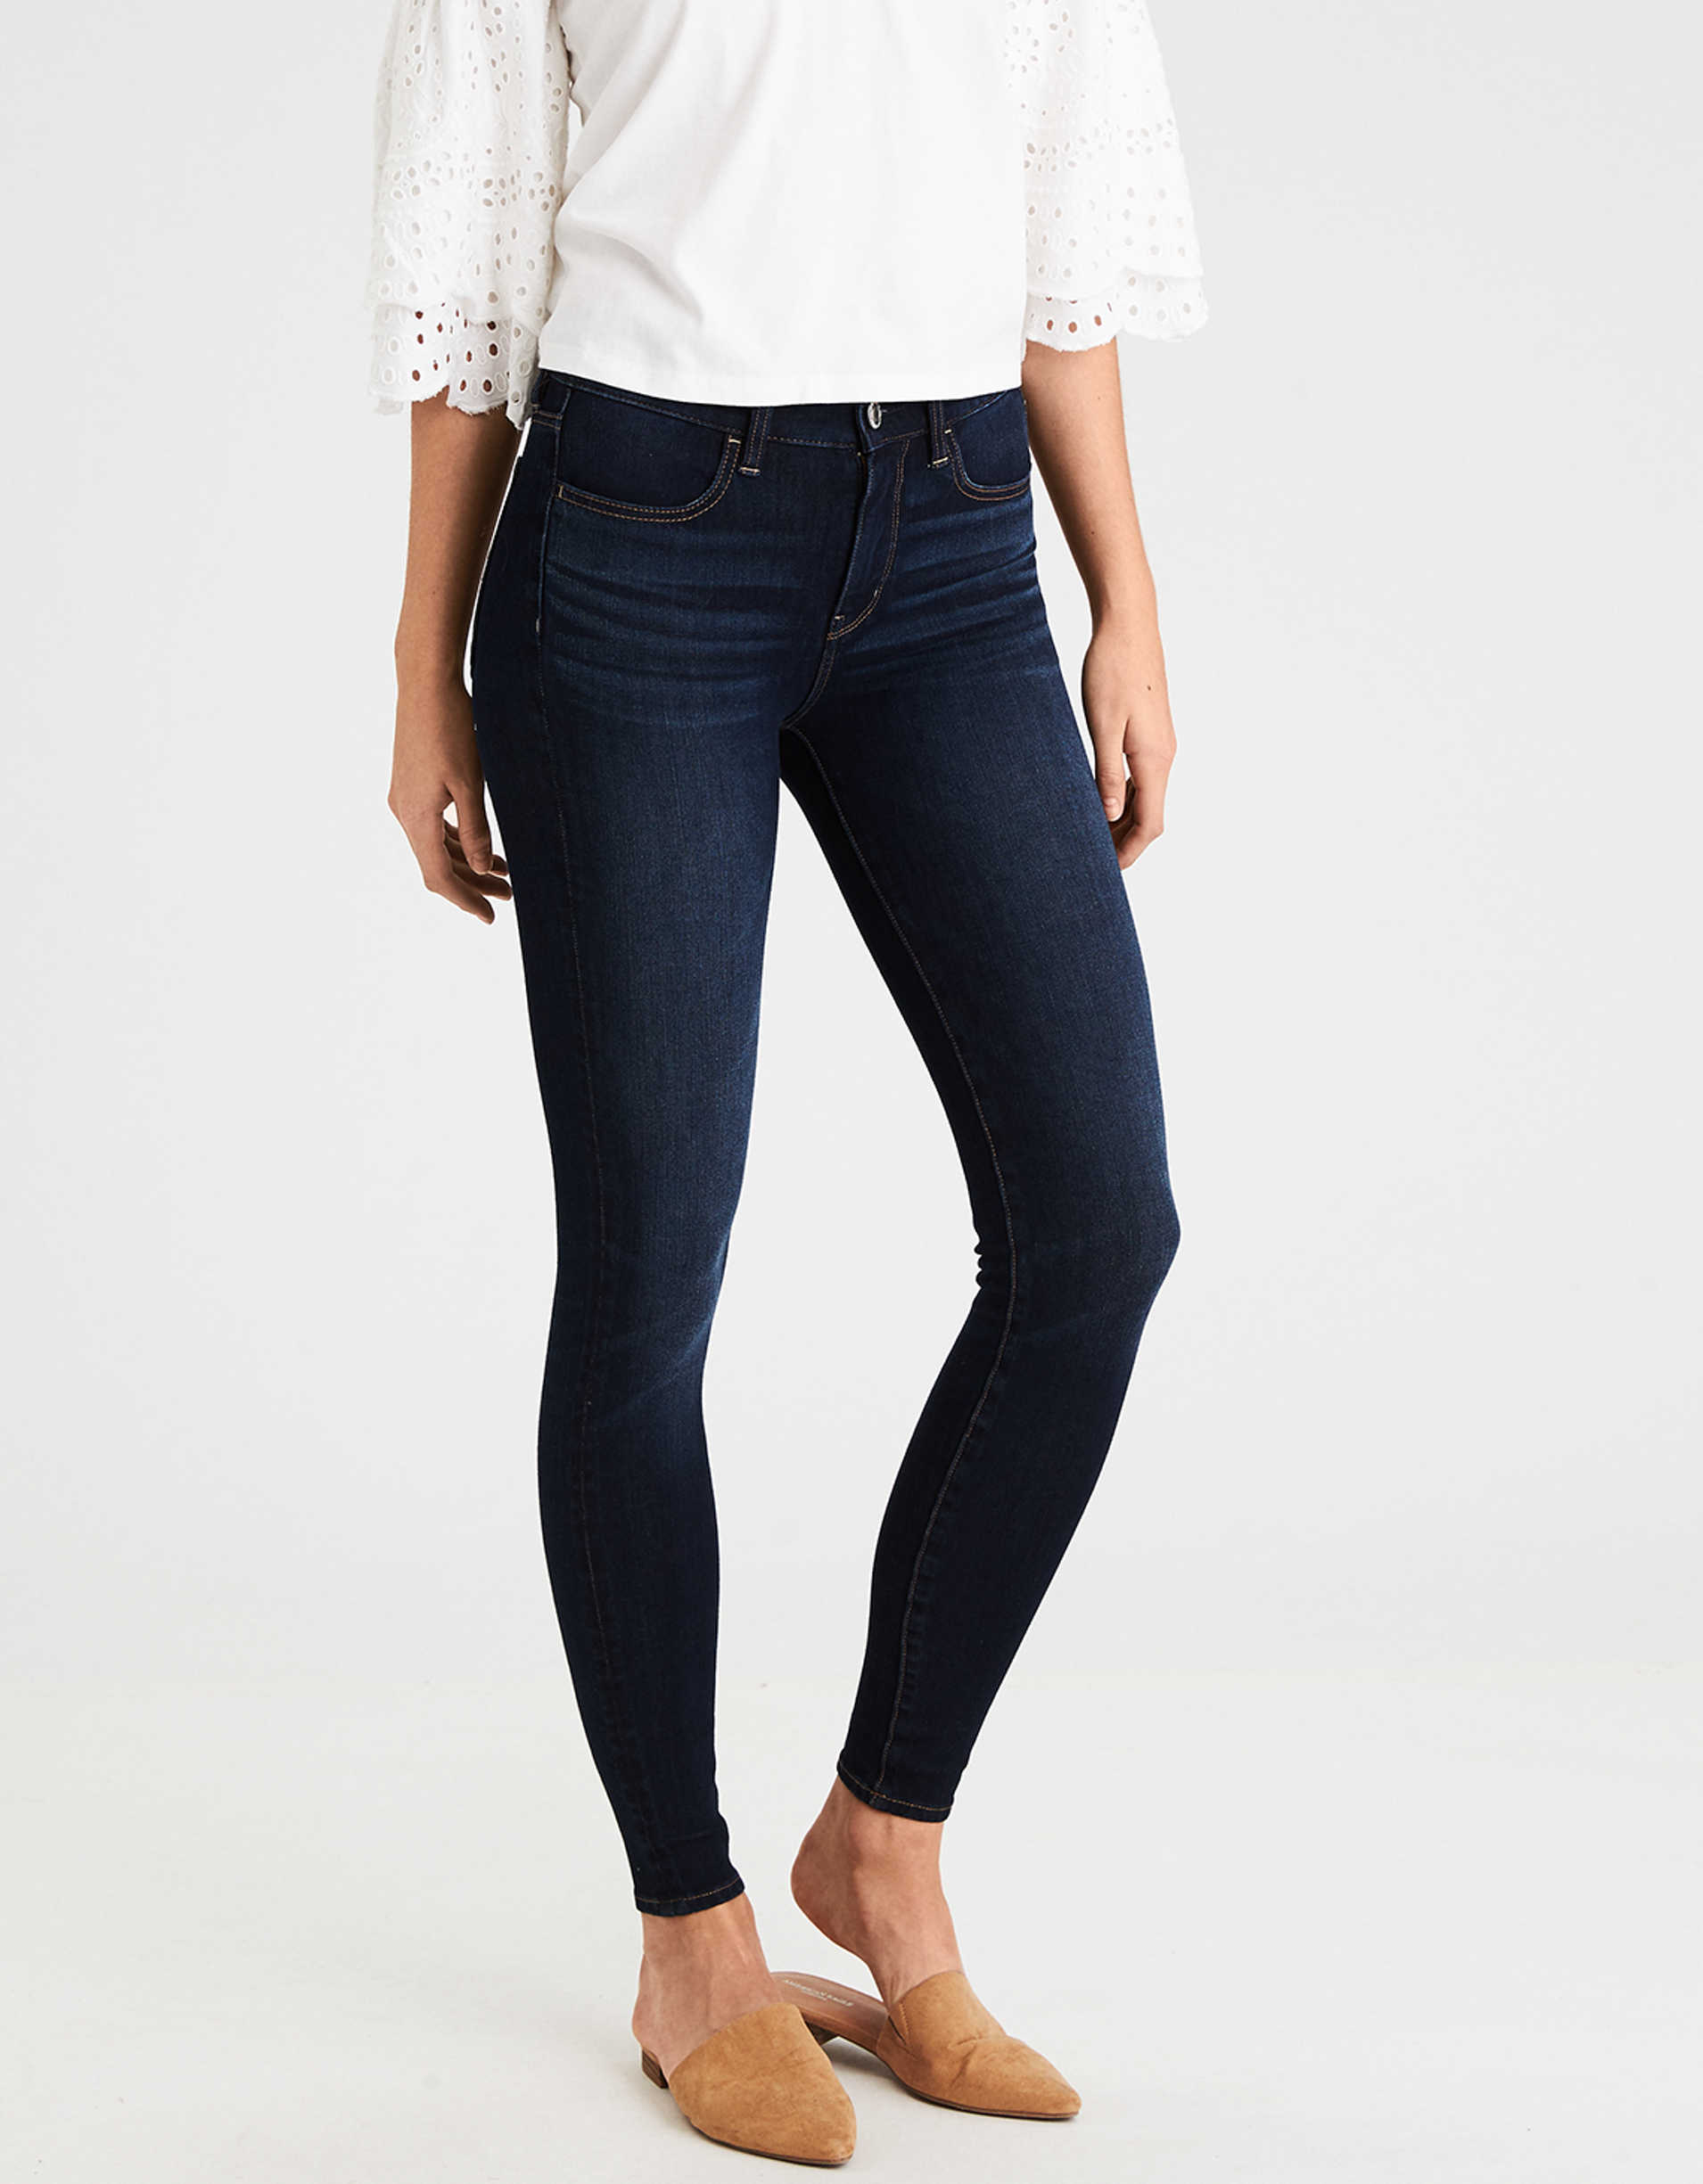 The Dream Jean High-Waisted Jegging